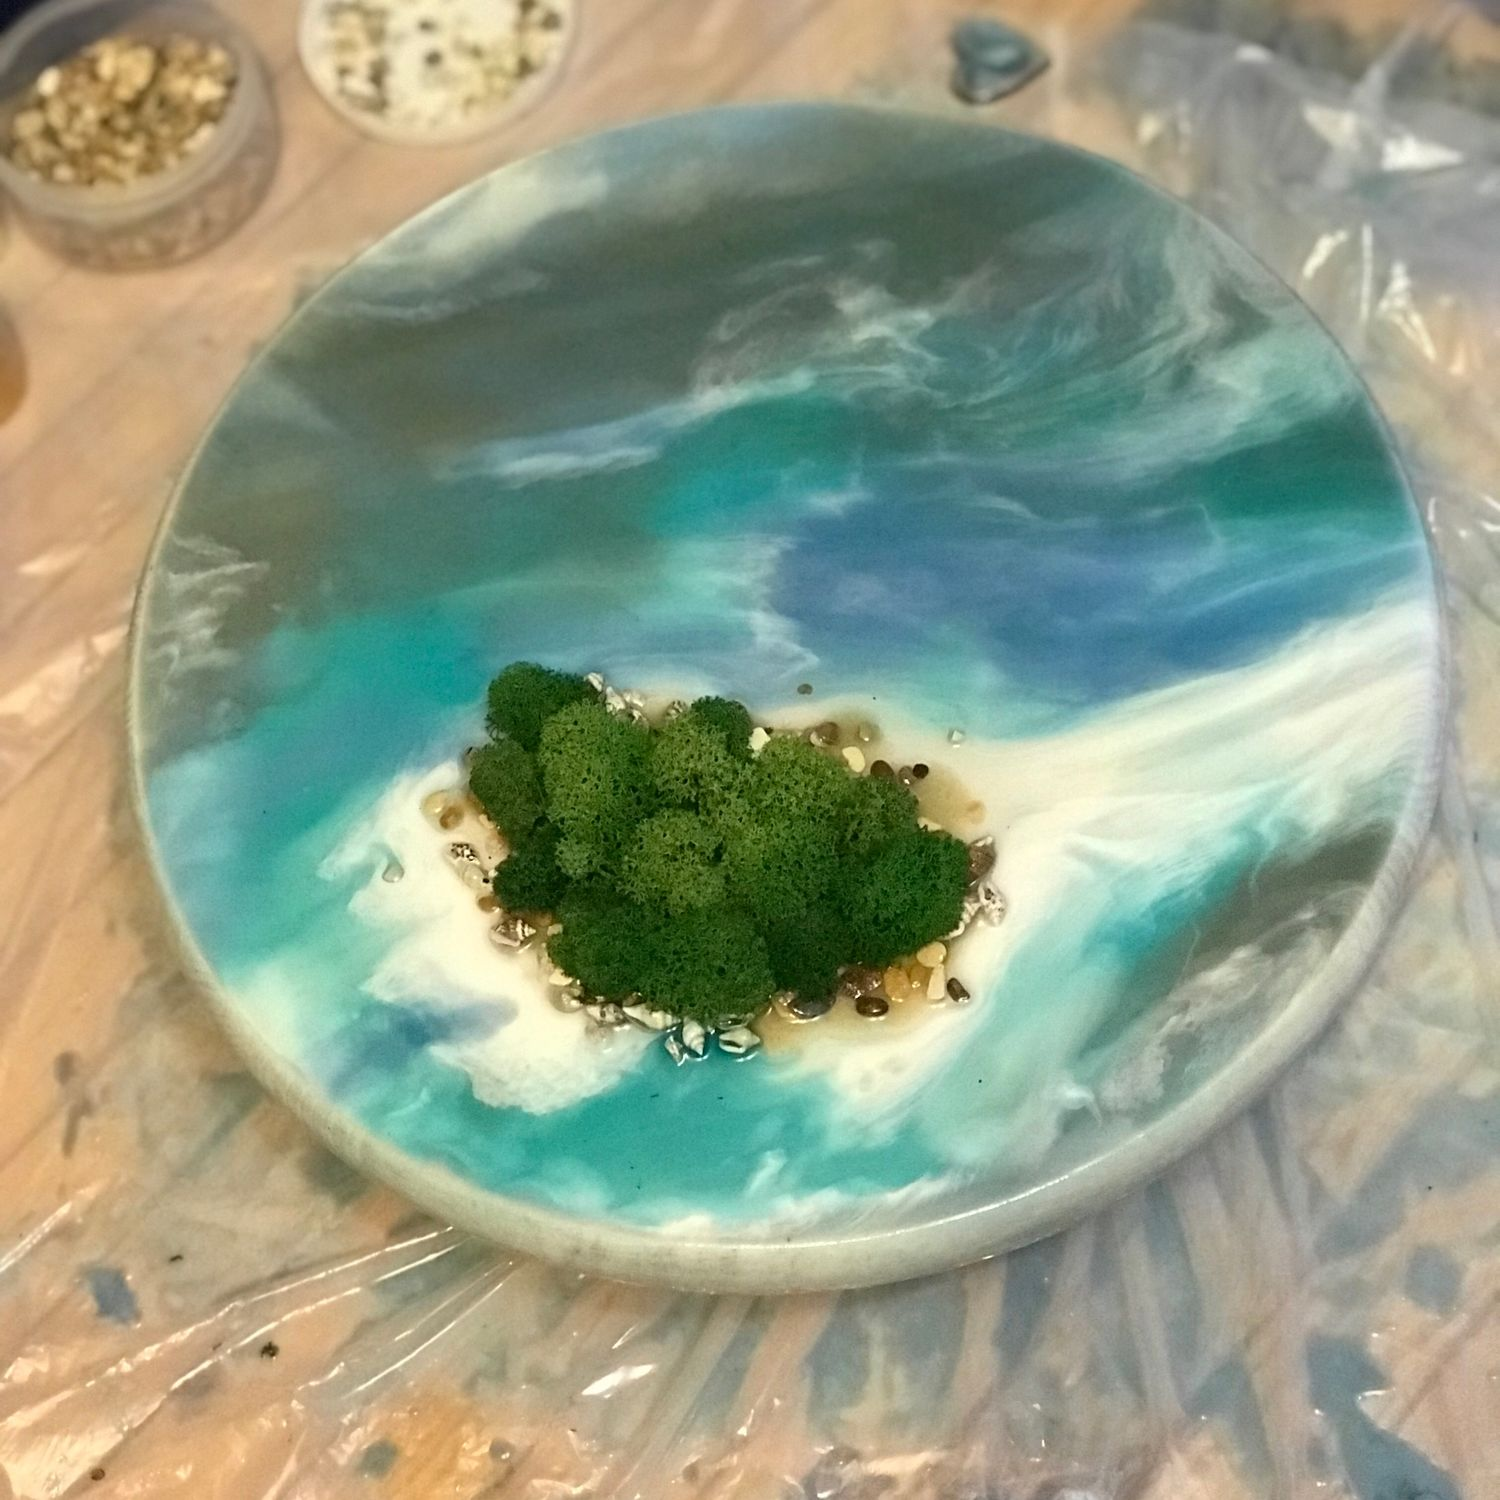 «Island». Painting made of stabilized moss and epoxy resin, Pictures, Belgorod,  Фото №1